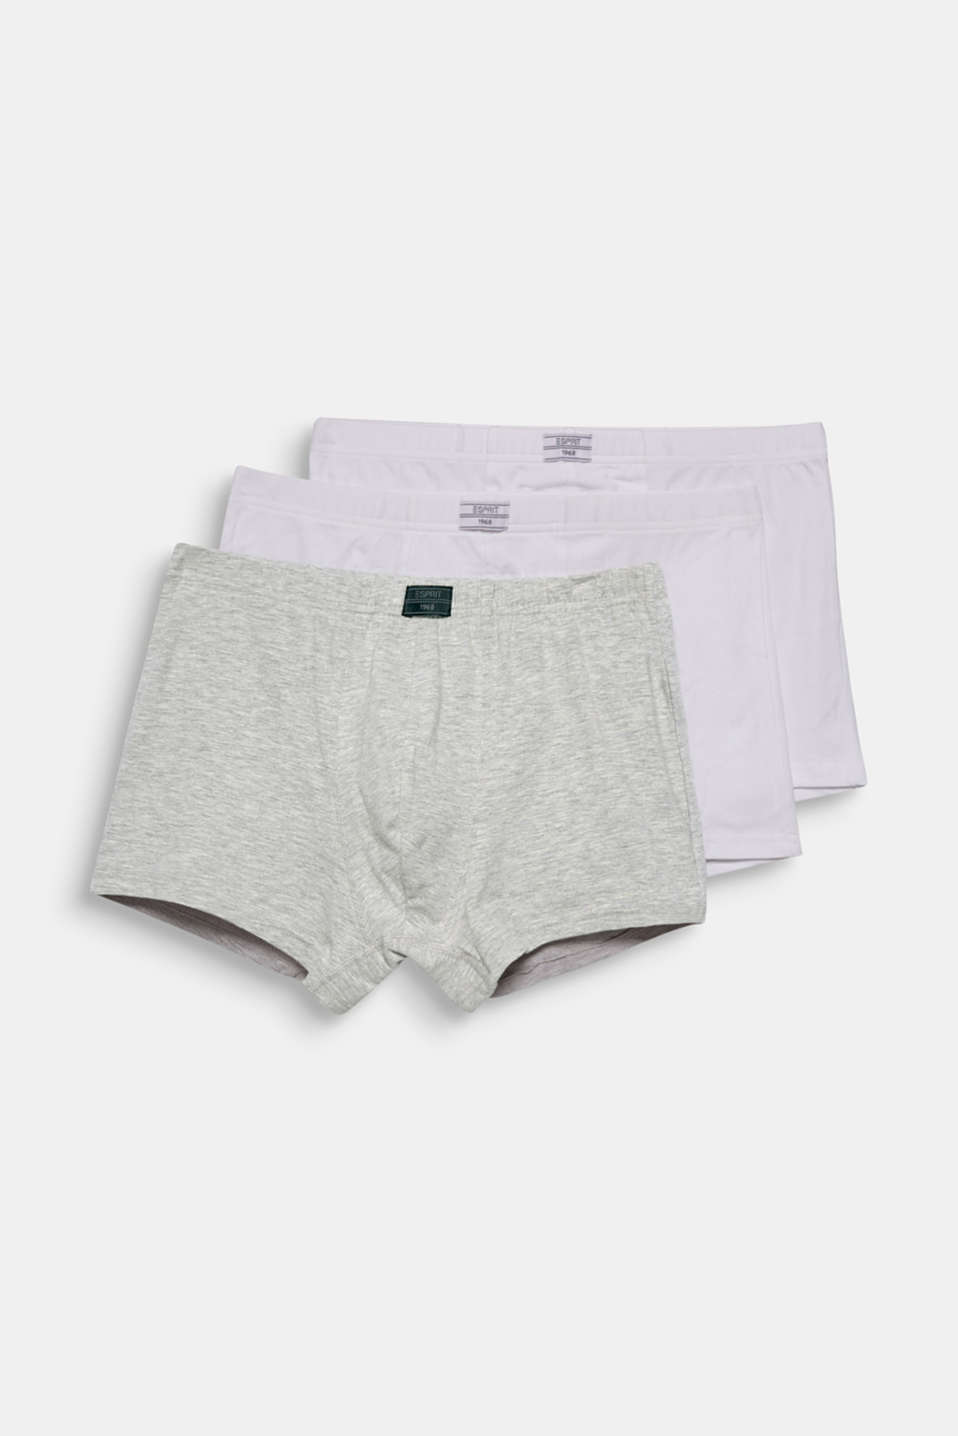 Esprit - Lot de 3 shortys en coton stretch